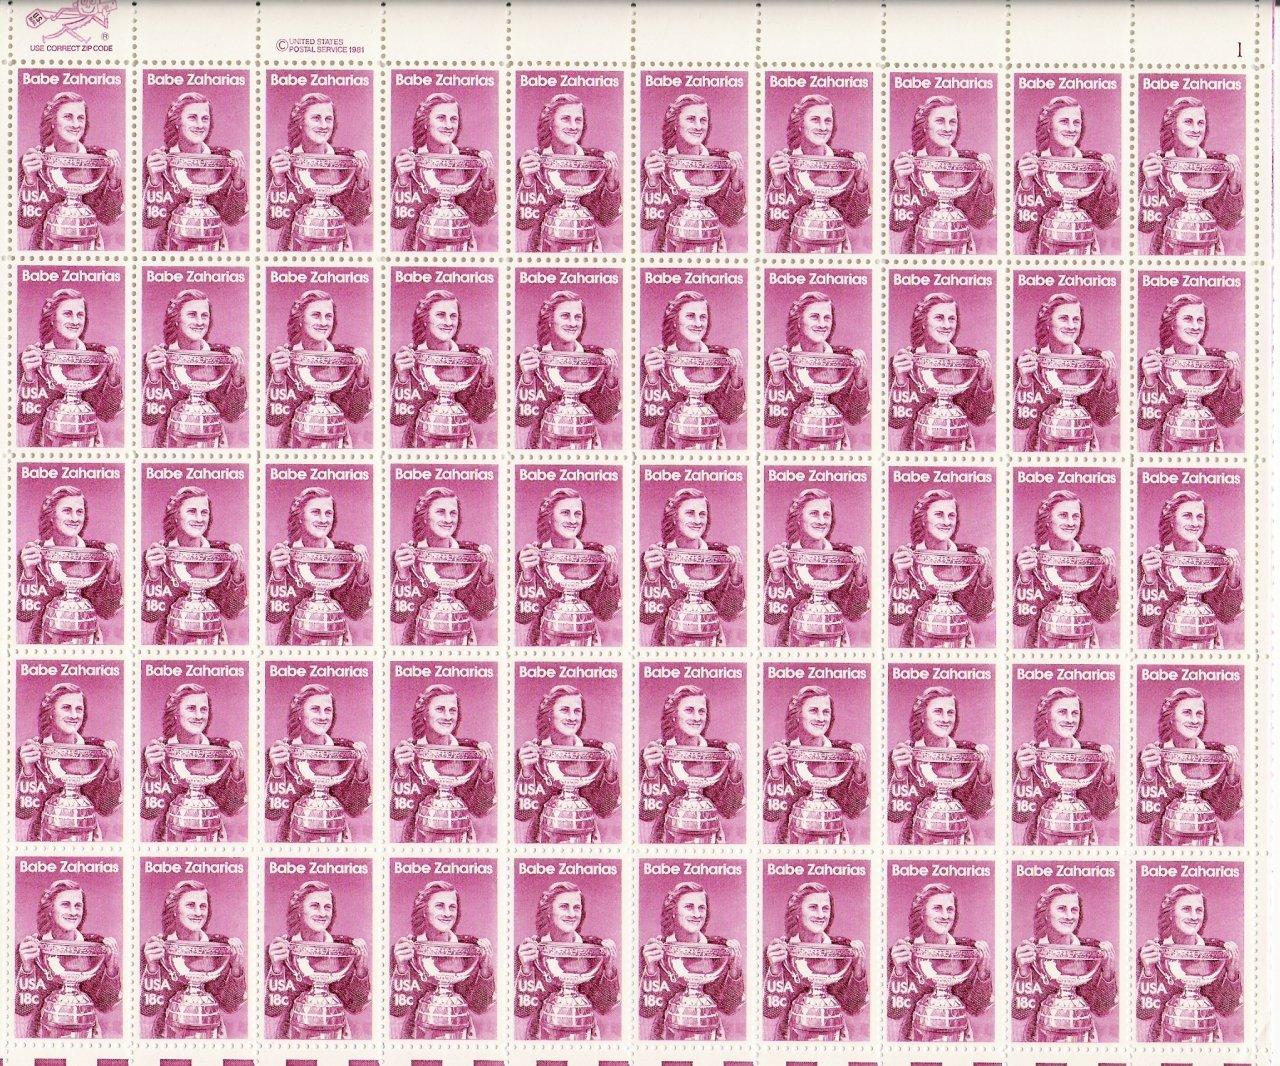 US Scott 1932 - Sheet of 50 - Babe Zaharais - Mint Never Hinged